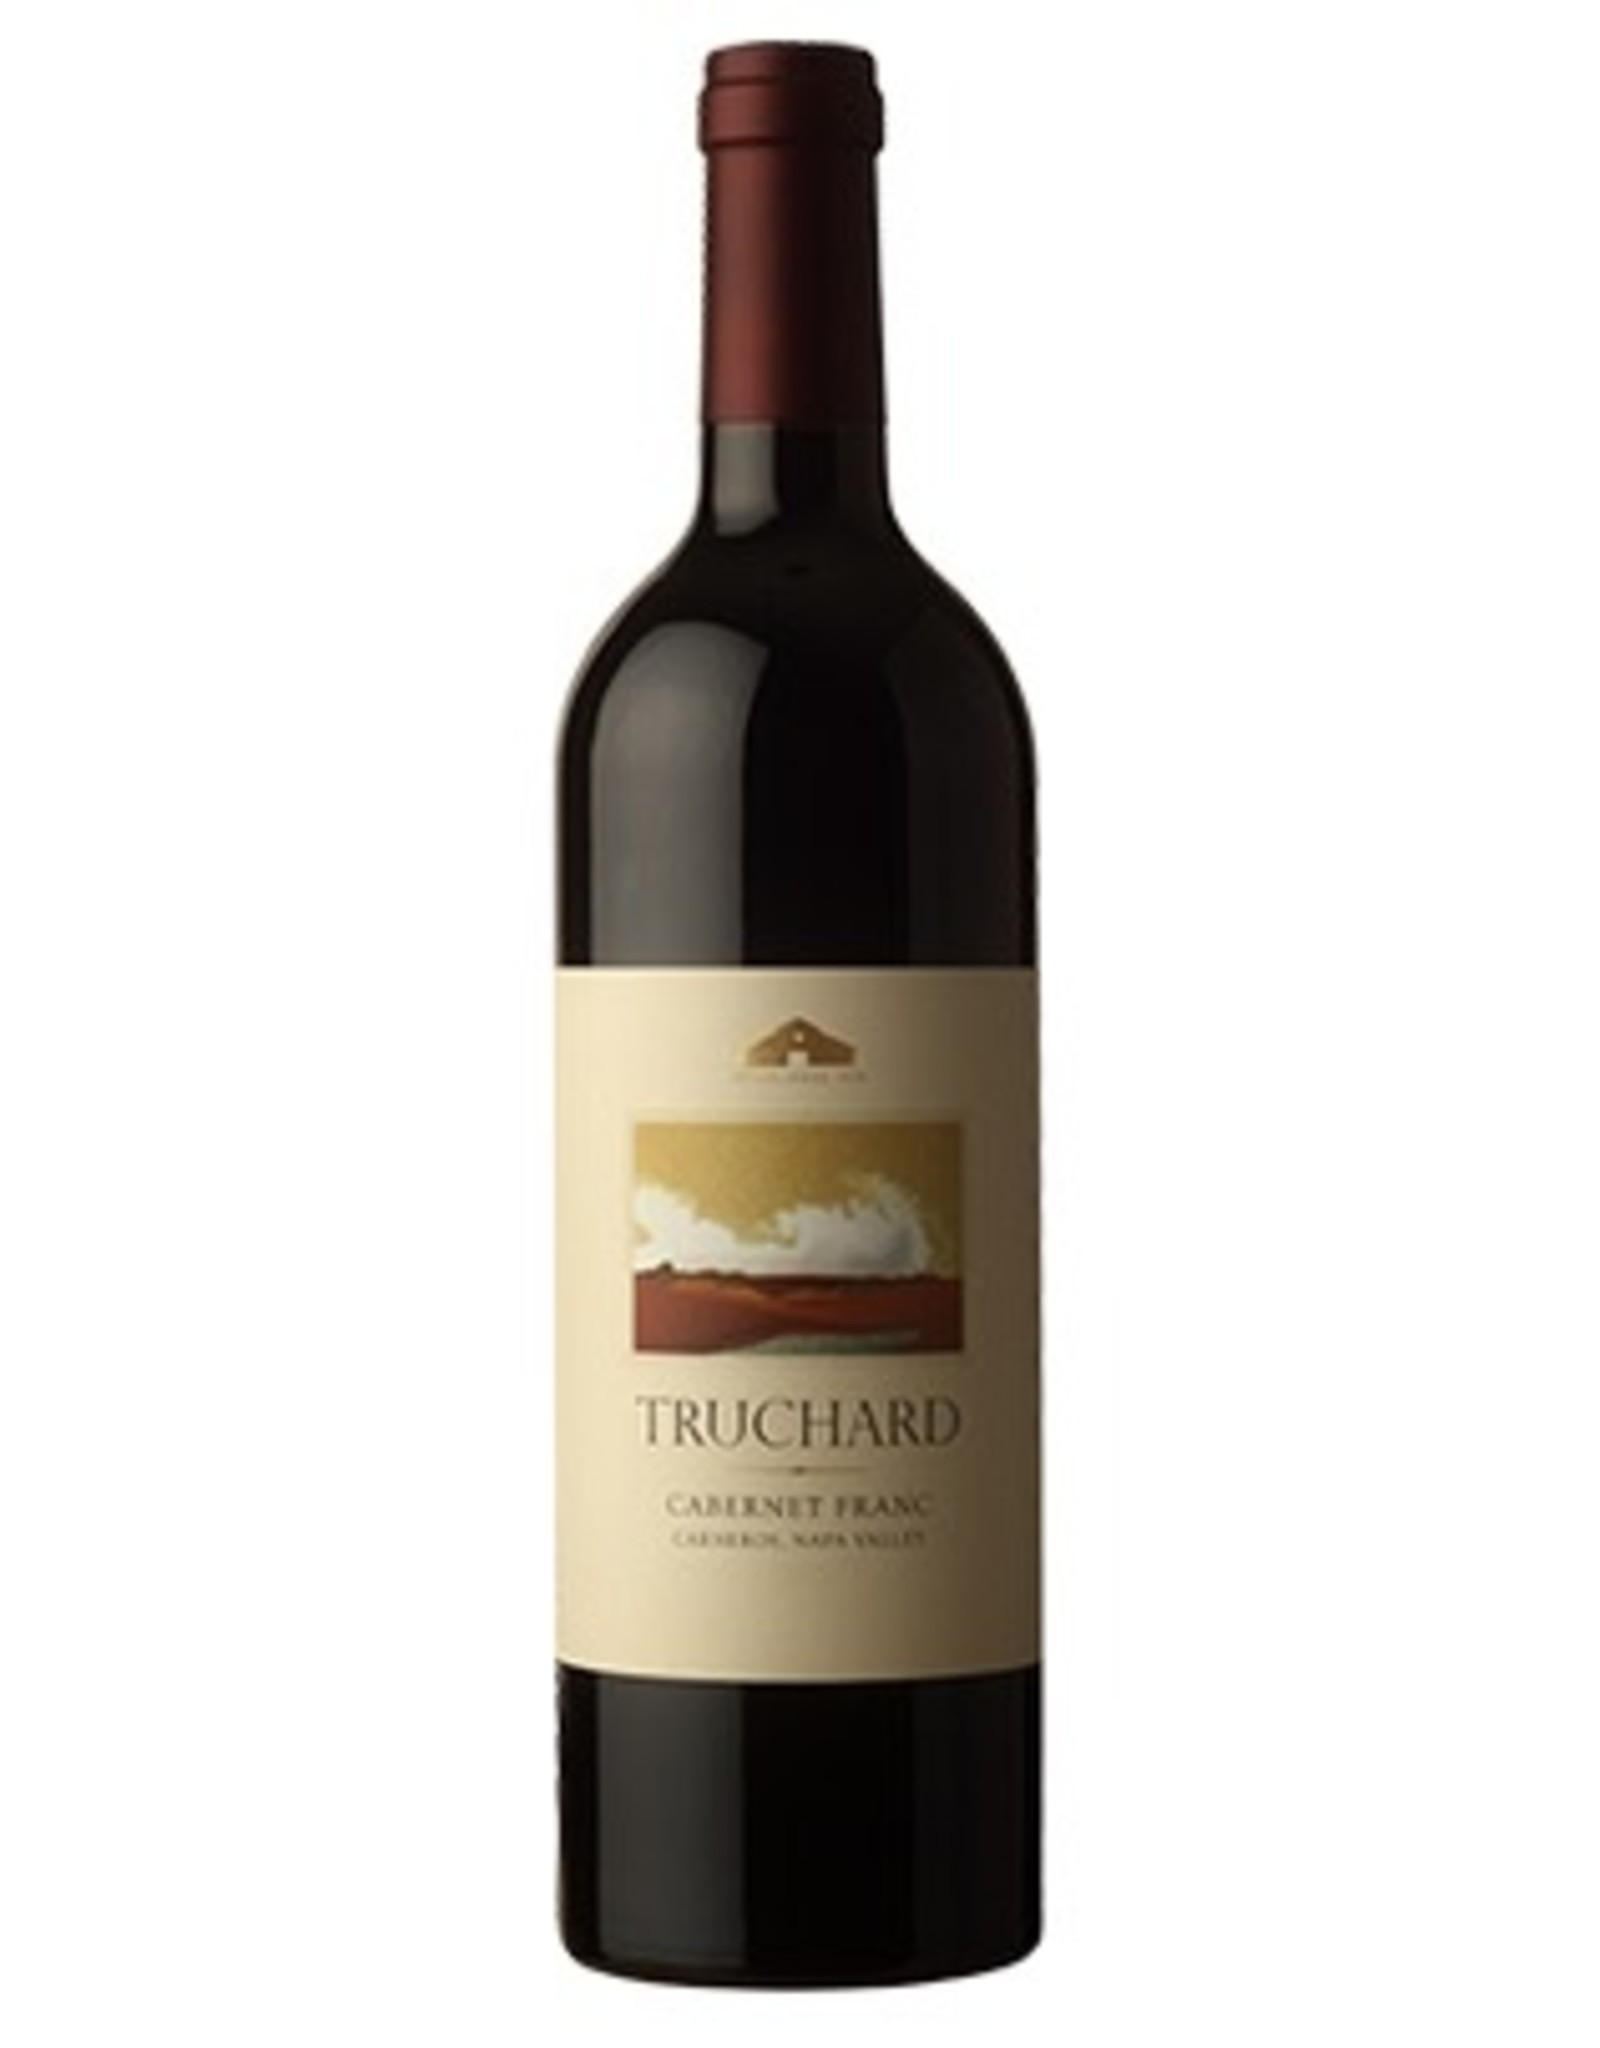 Red Wine 2015, Truchard, Cabernet Franc, Carneros, Napa, California, 14.2% Alc, CT